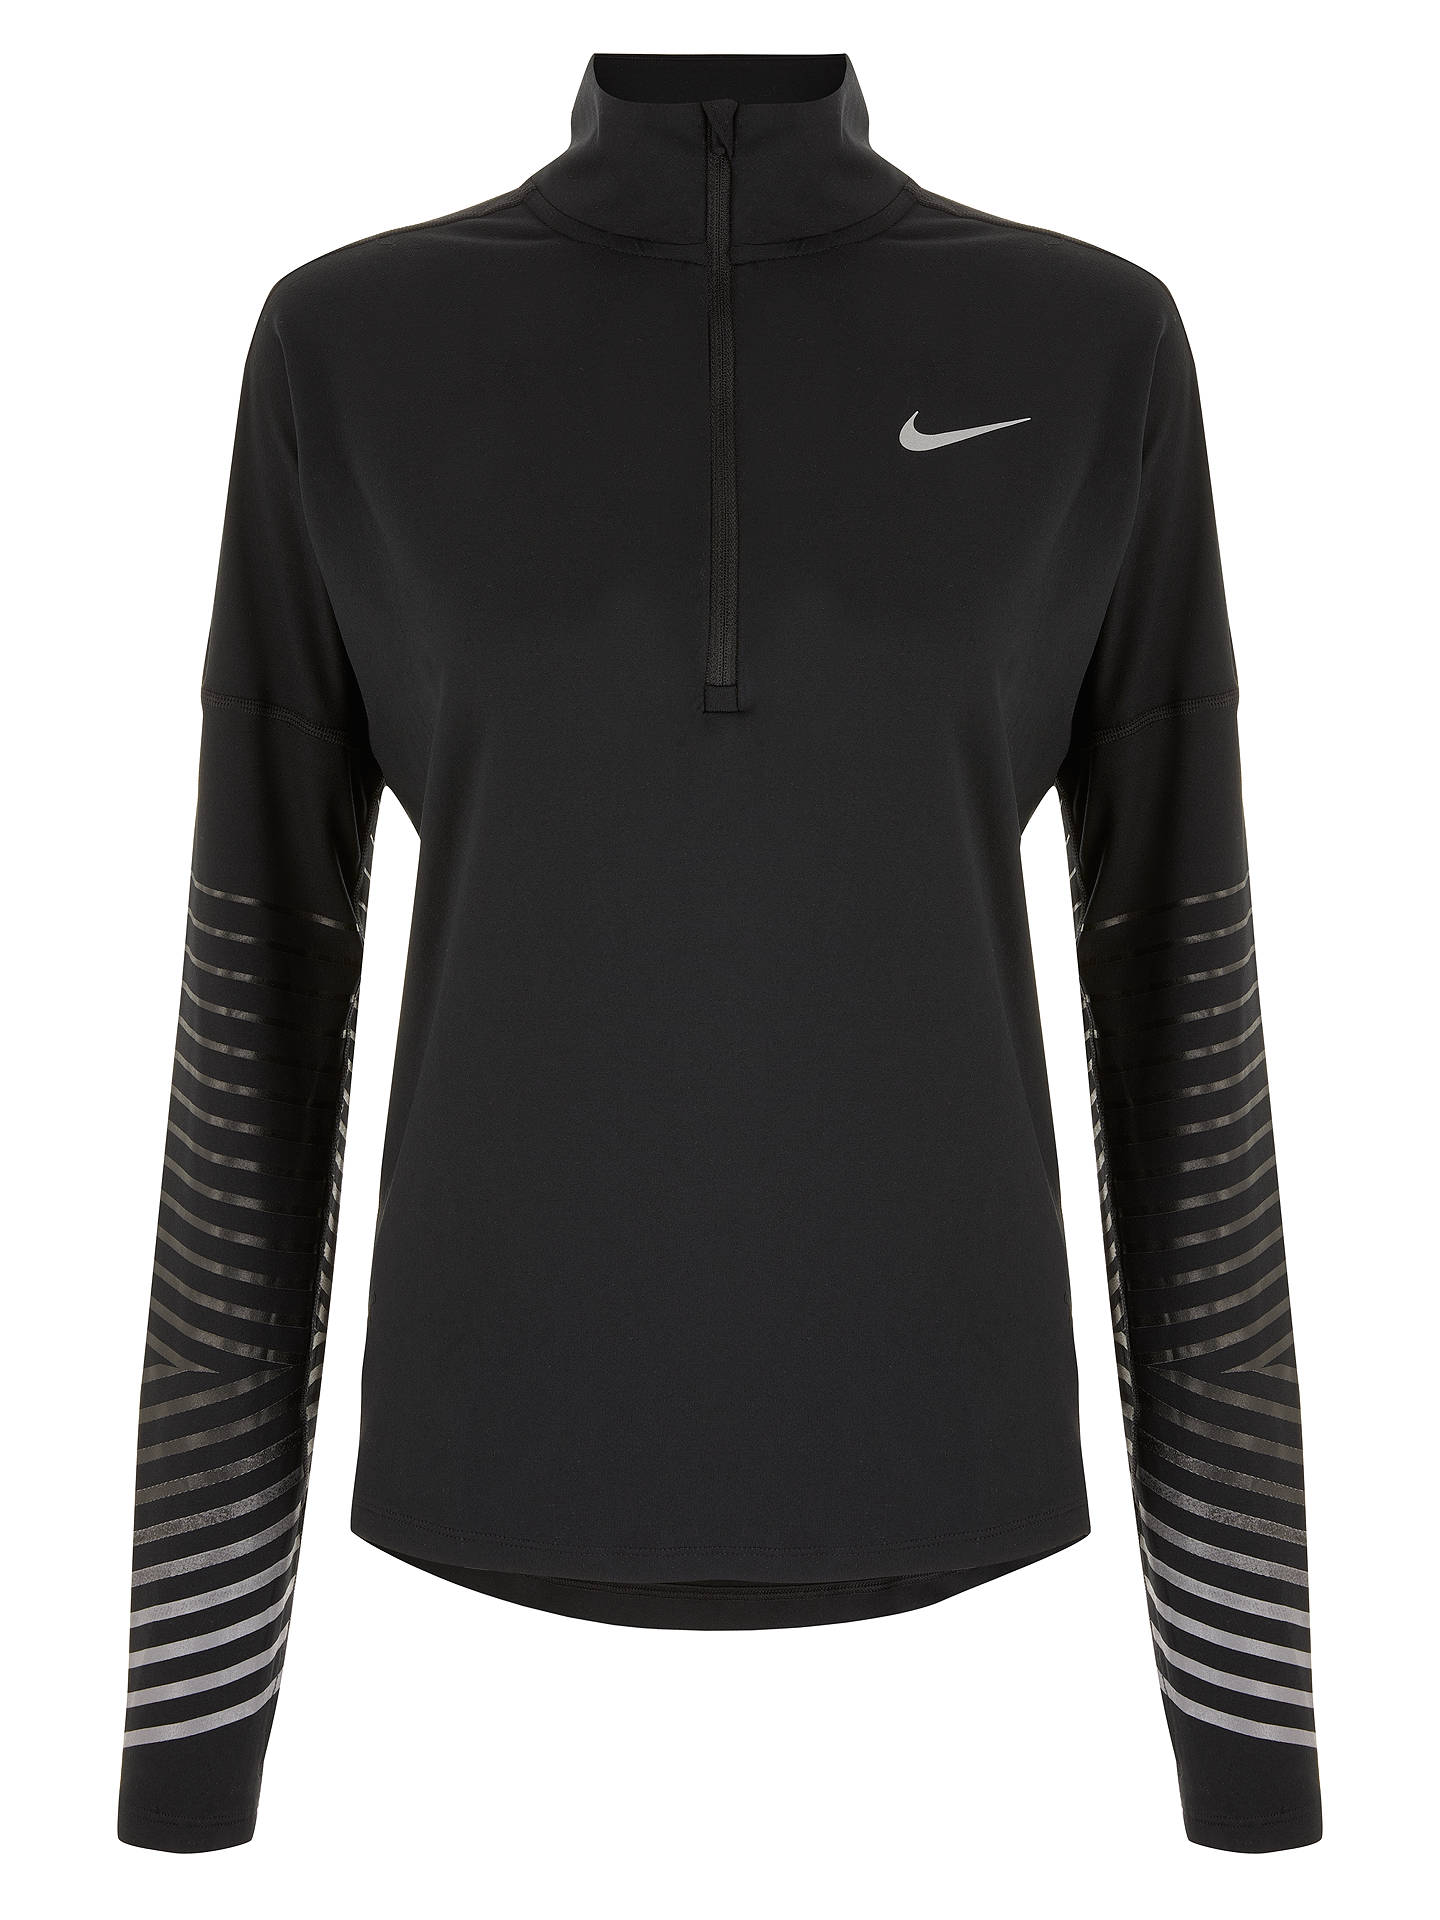 31304aea7a85 ... Buy Nike Dry Element Flash Running Top